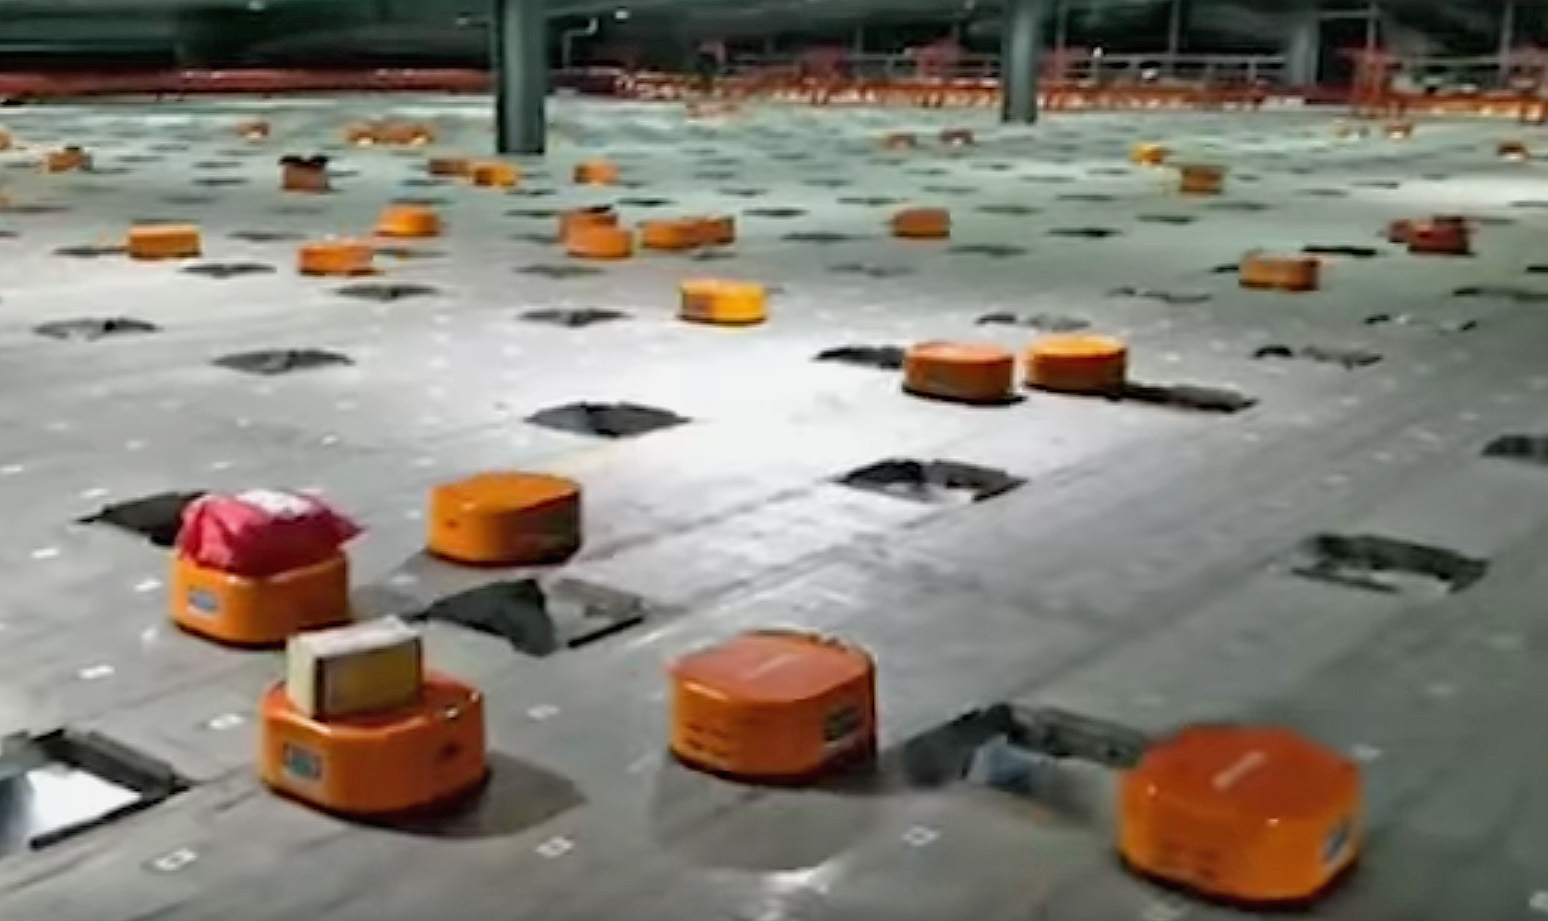 Package sorting robot army in China